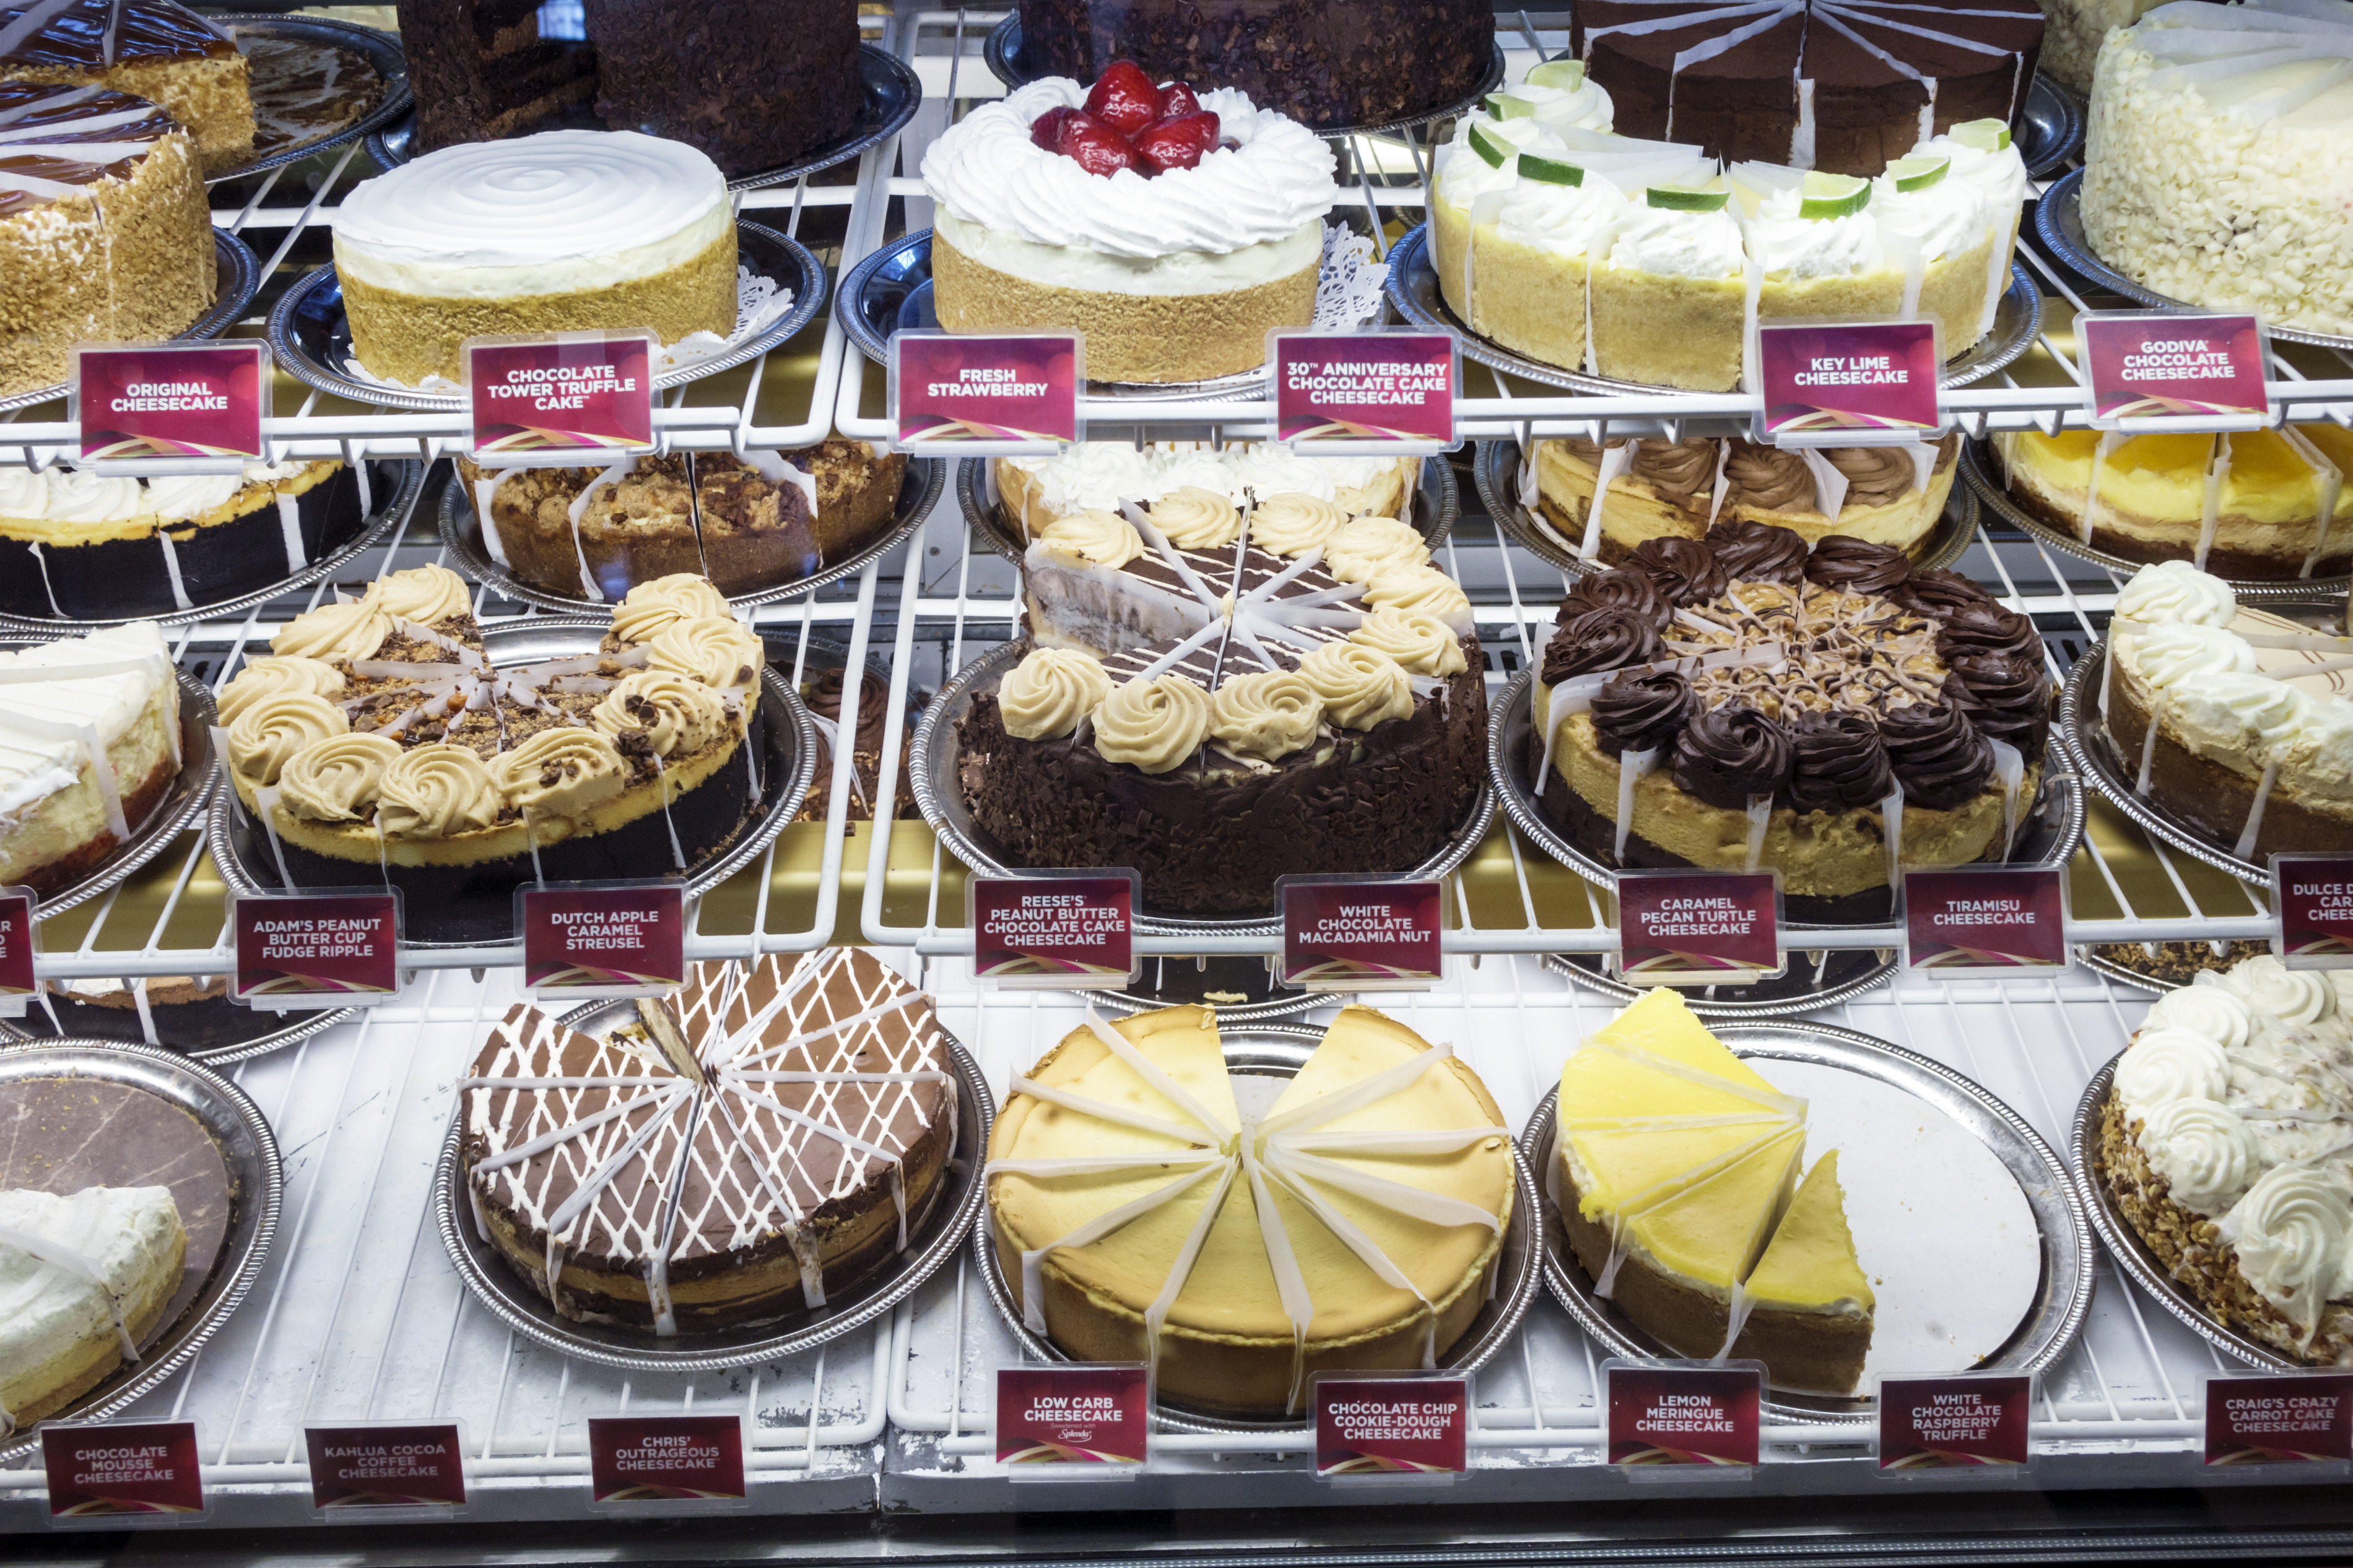 The refrigerated display case at the Cheesecake Factory at Coastland Center Shopping Mall.